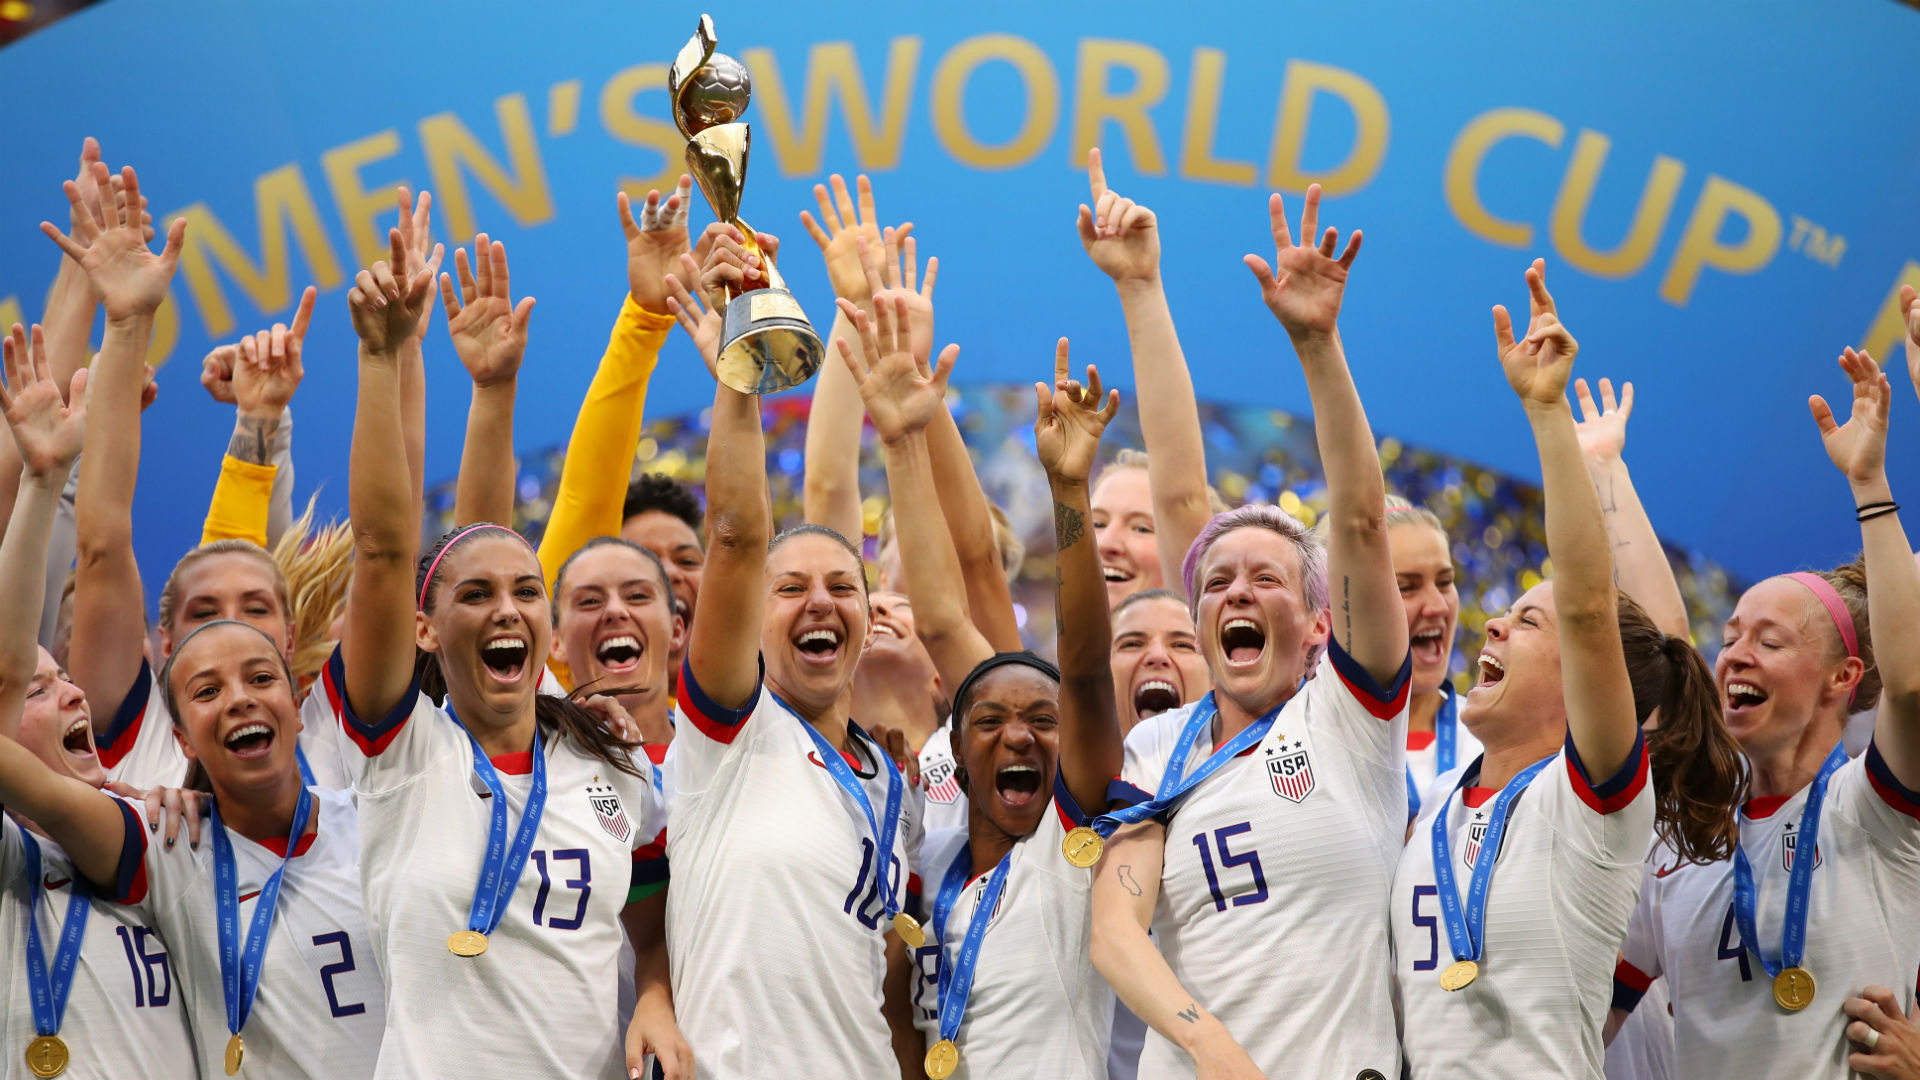 FIFA wants to expand Women's World Cup to 32 teams